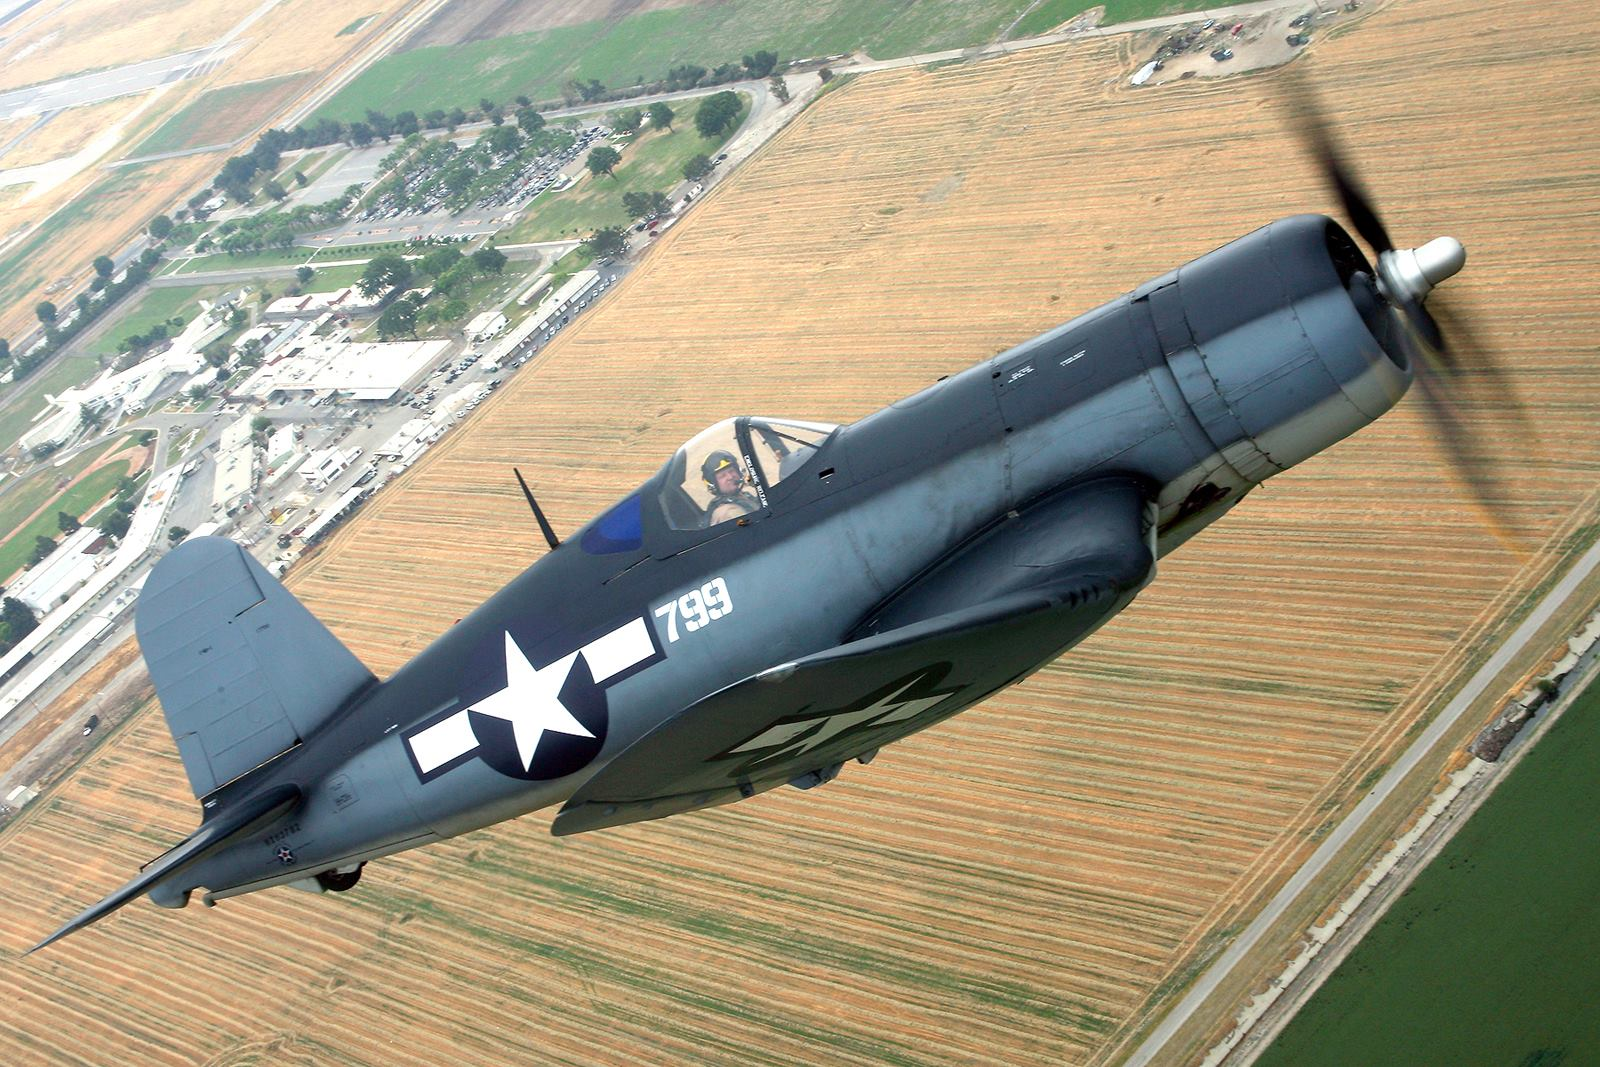 The Planes Of Fame Corsair, one of the few in the word with a passenger seat located behind the pilot. ( Photo by Frank Mormillo via Chris Fahey)